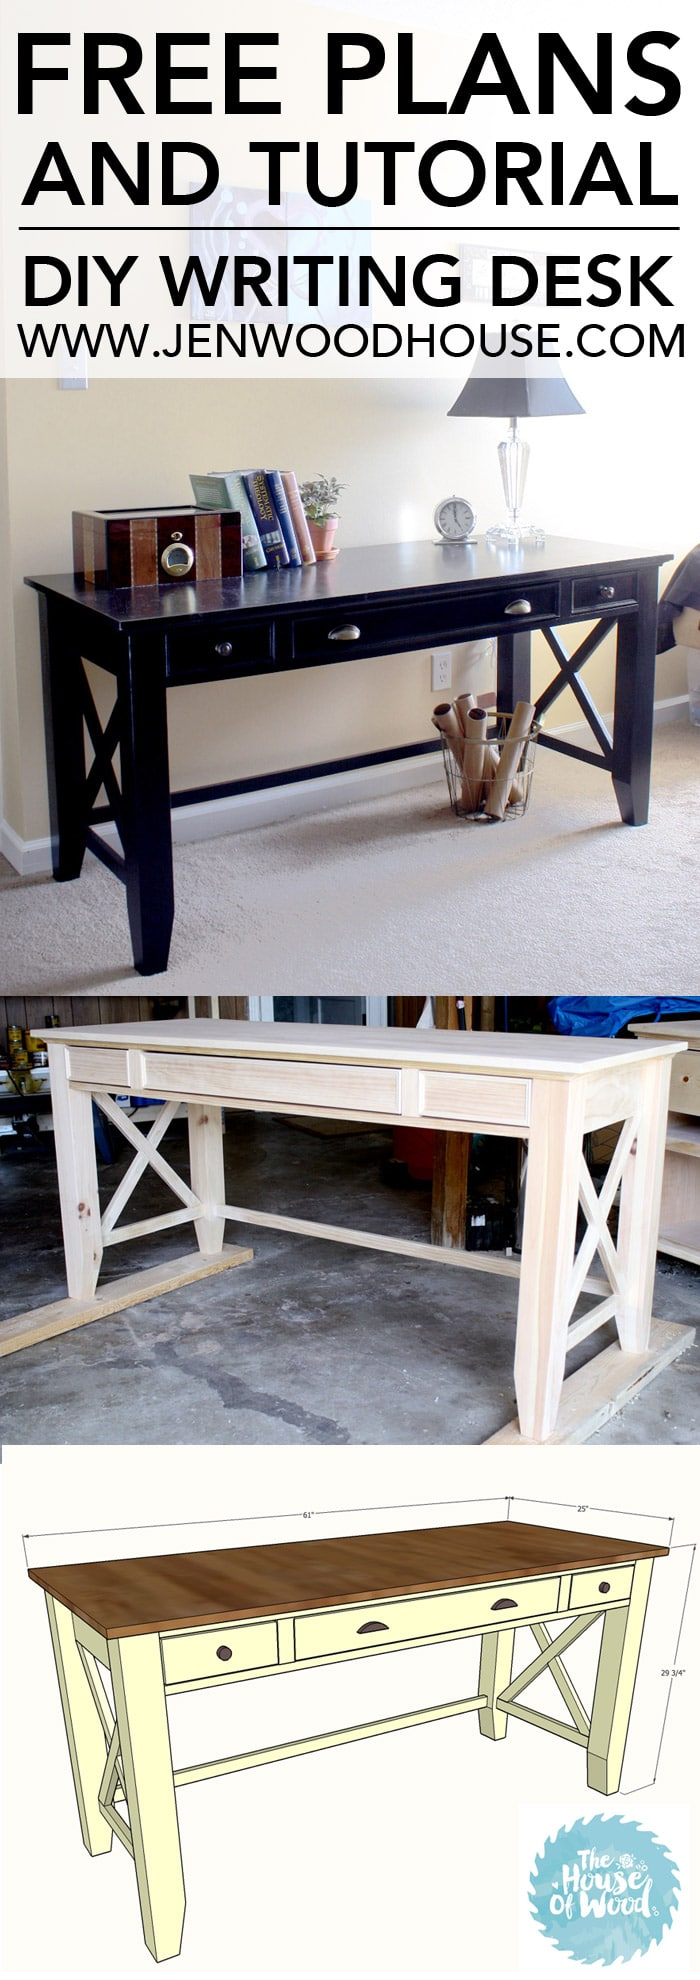 How to build a DIY writing desk. Free plans and step-by-step tutorial!